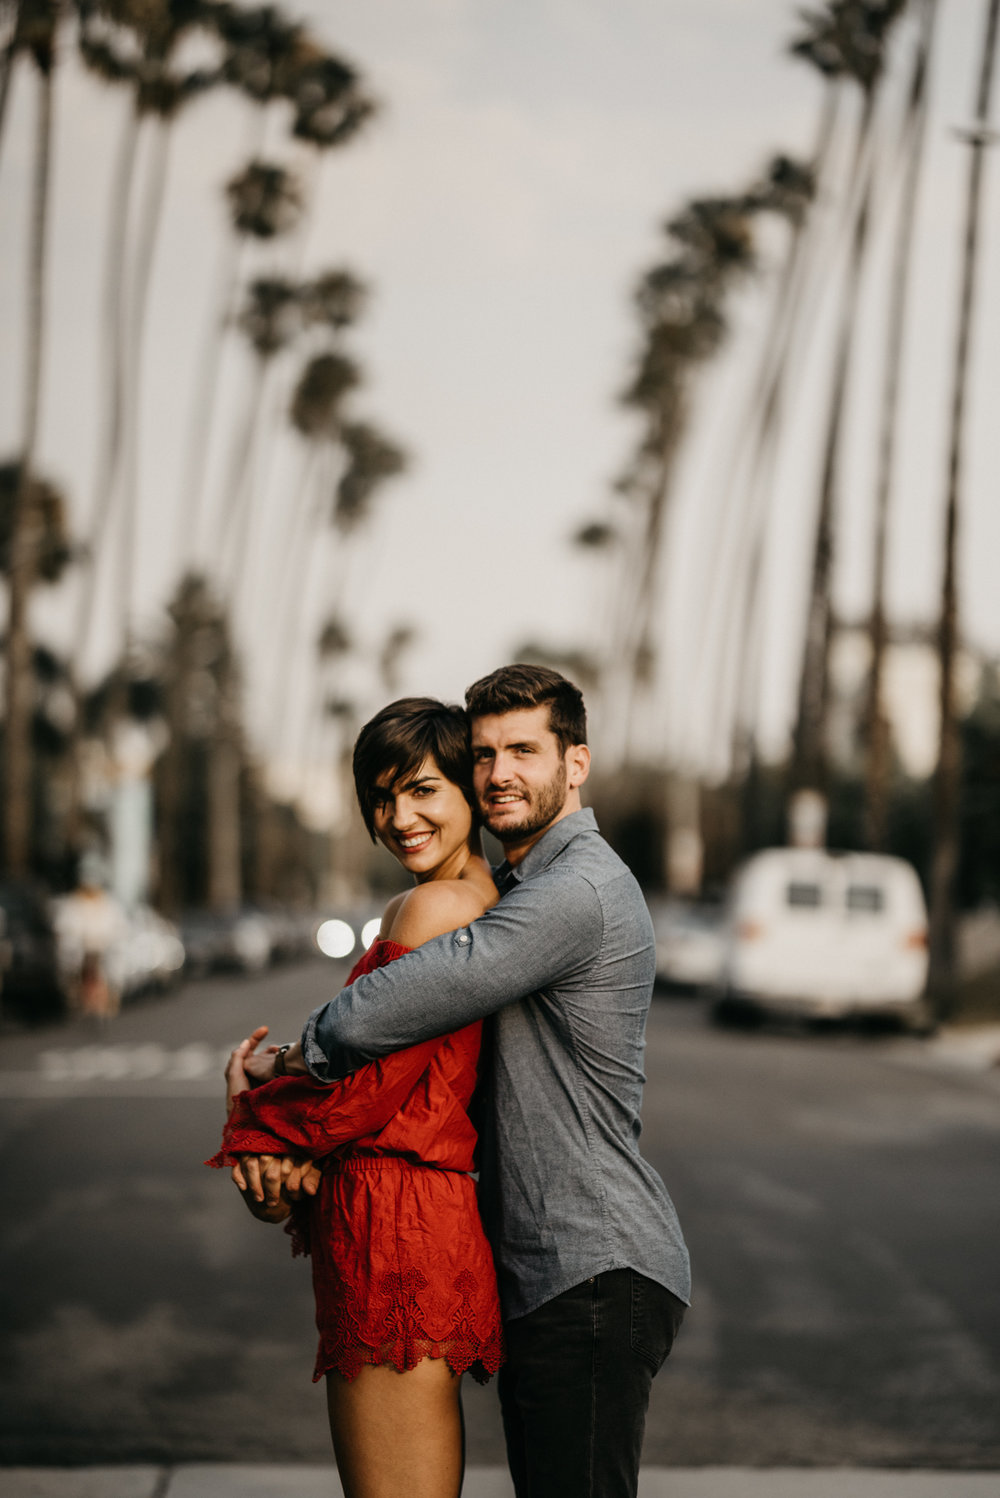 Isaiah + Taylor Photography - Santa Monica Engagement Session, Los Angeles Wedding Photographer-004.jpg